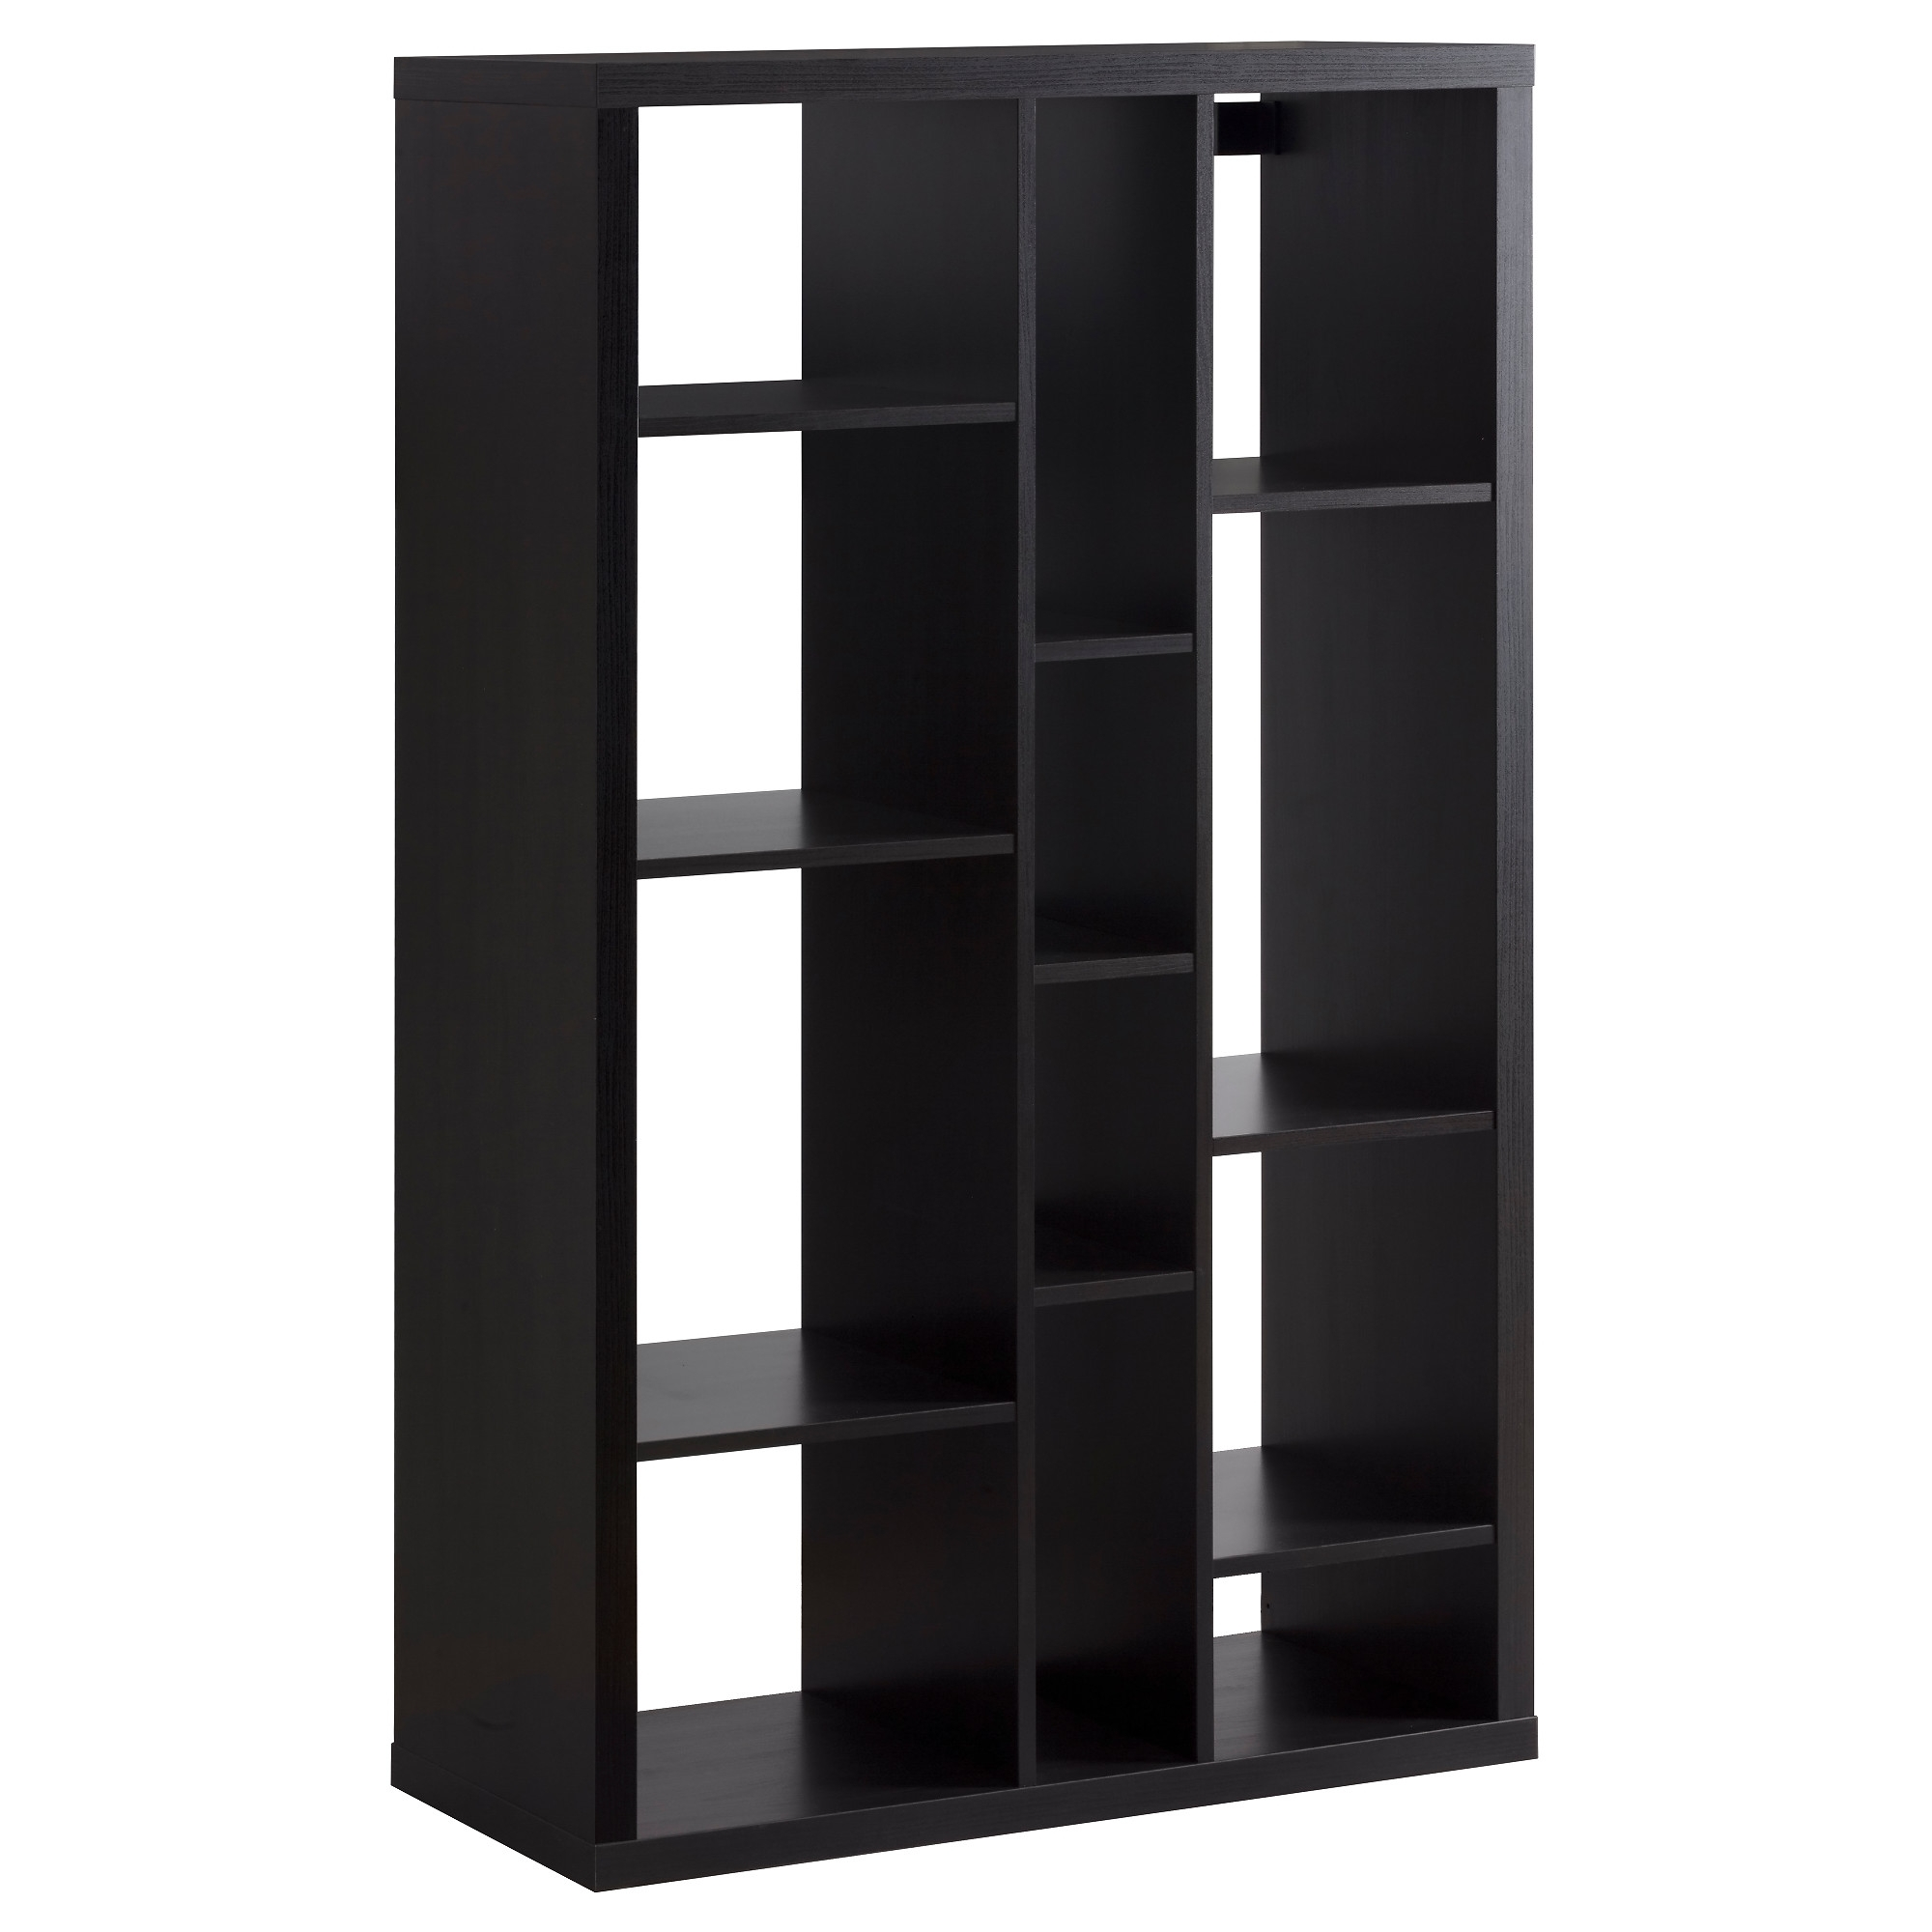 Ikea Expedit Bookcases Pertaining To Favorite Kallax Shelf Unit – White – Ikea (Gallery 4 of 15)